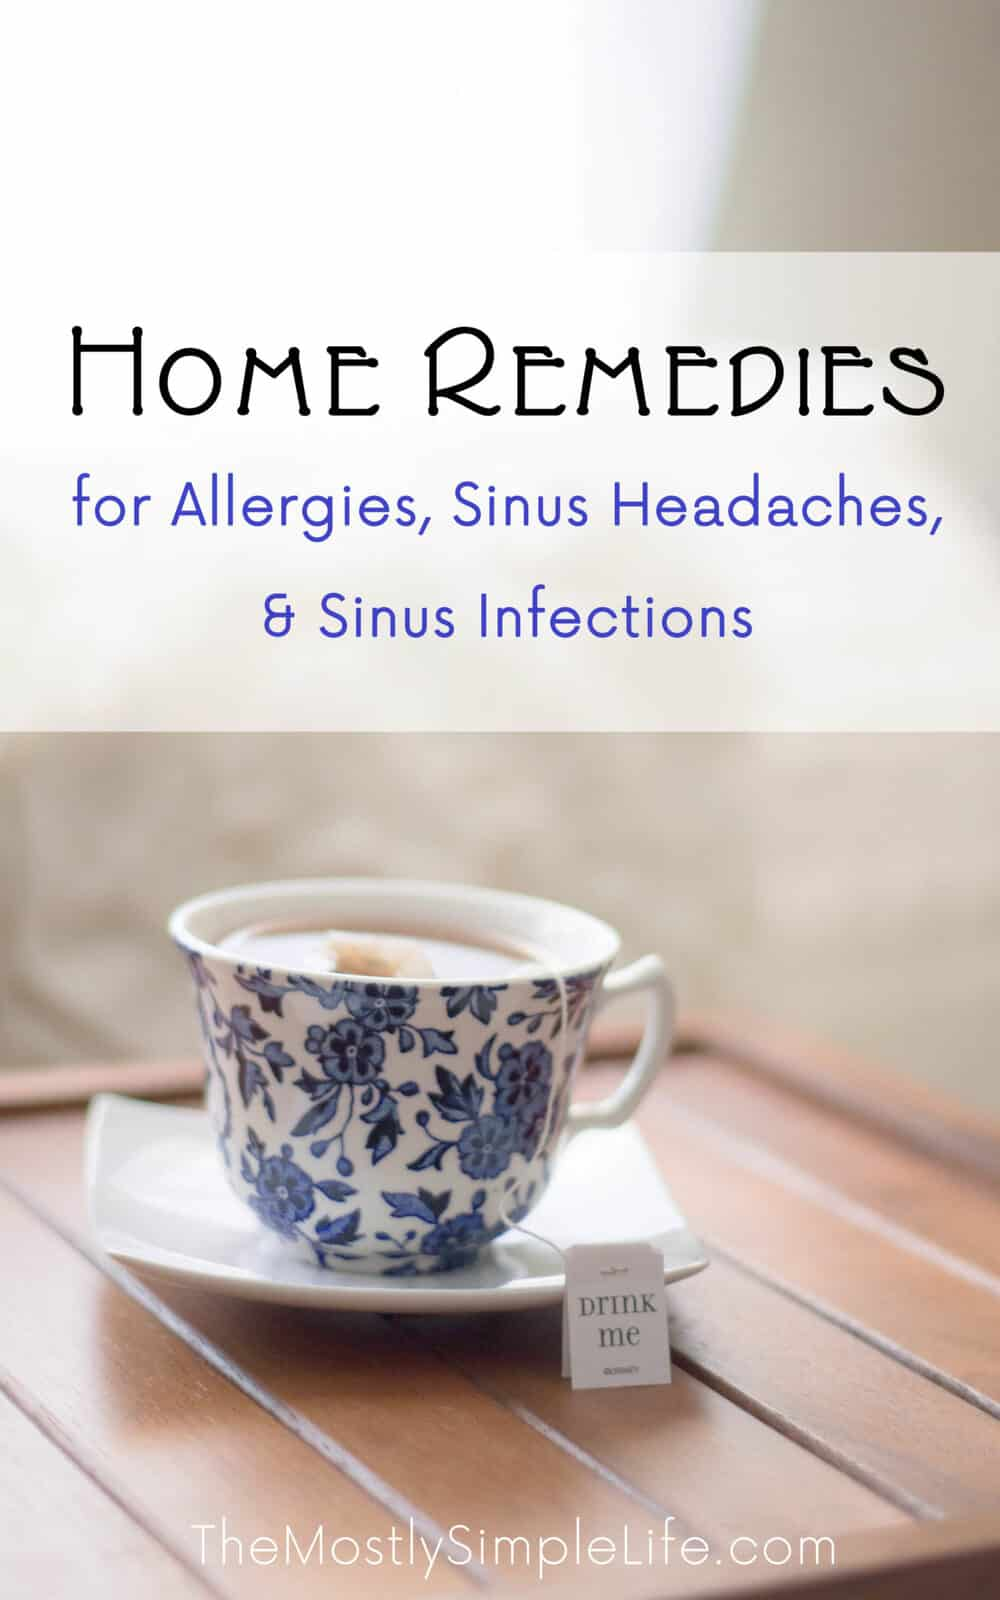 Allergy & Sinus Infection Home Remedies